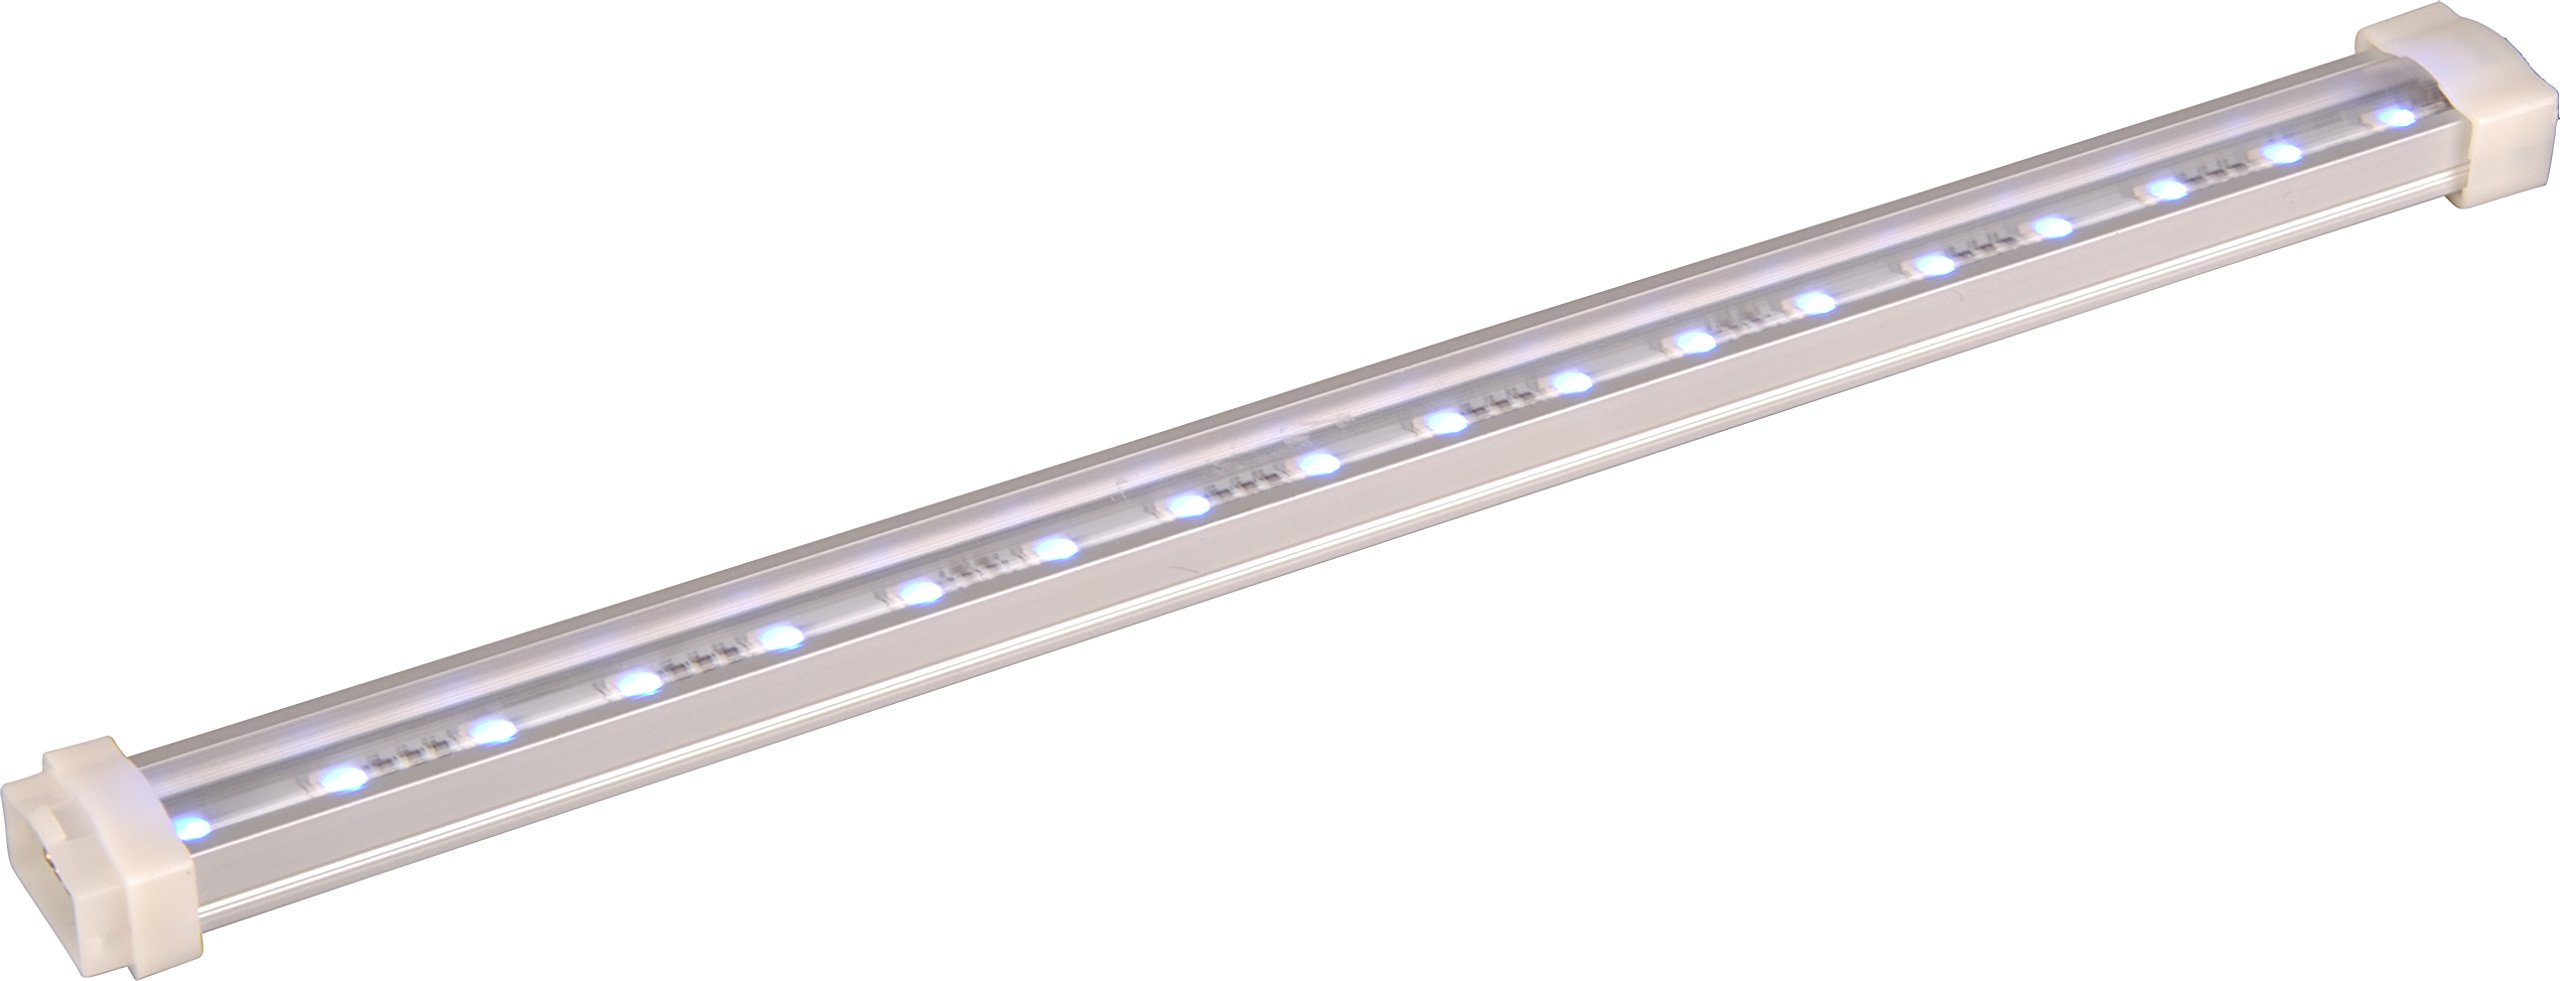 Maxim 53724AL Rainbow Channel 24V 48'', Brushed Aluminum Finish, Glass, LED Bulb , 100W Max., Damp Safety Rating, Standard Dimmable, Glass Shade Material, 2300 Rated Lumens